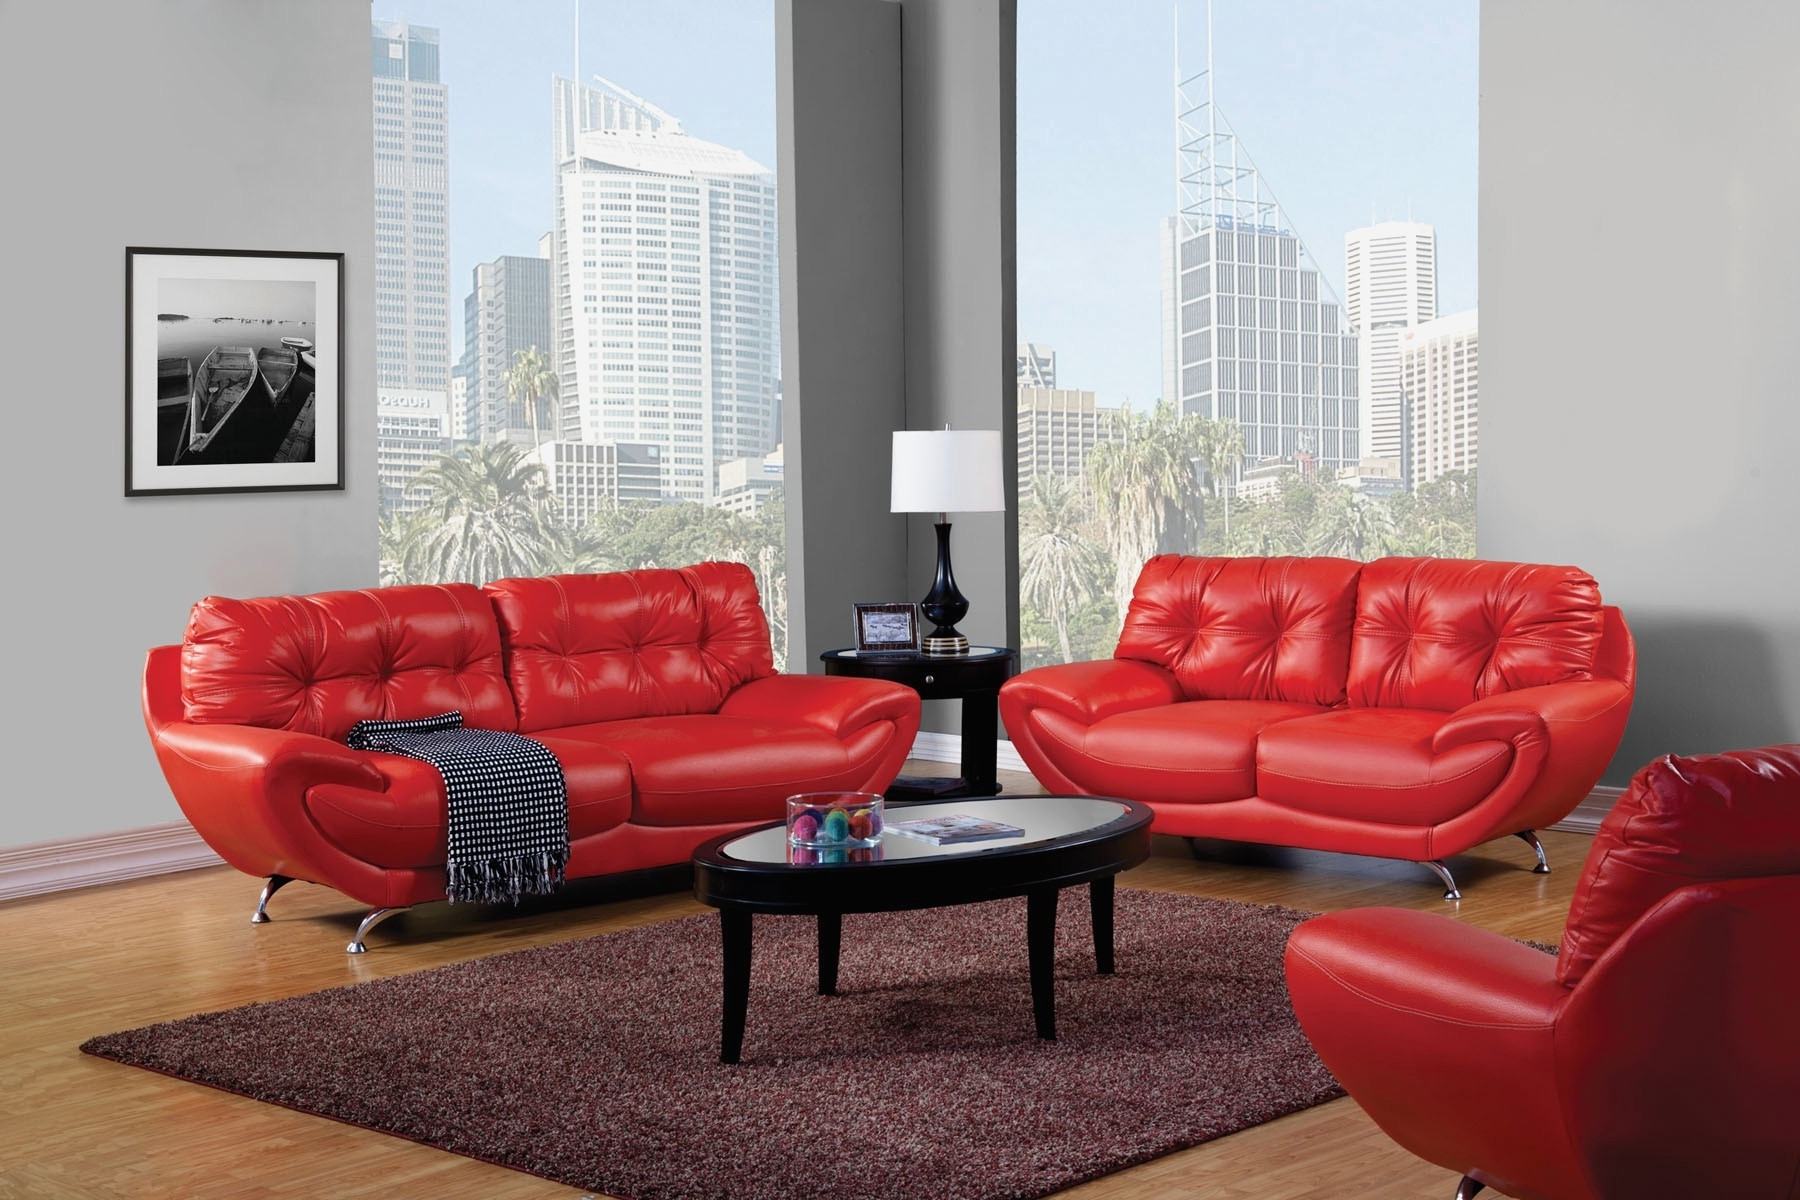 Current Red Leather Couches For Living Room Intended For Living Room : Creative Red Leather Couch Living Room Home Design (View 6 of 15)